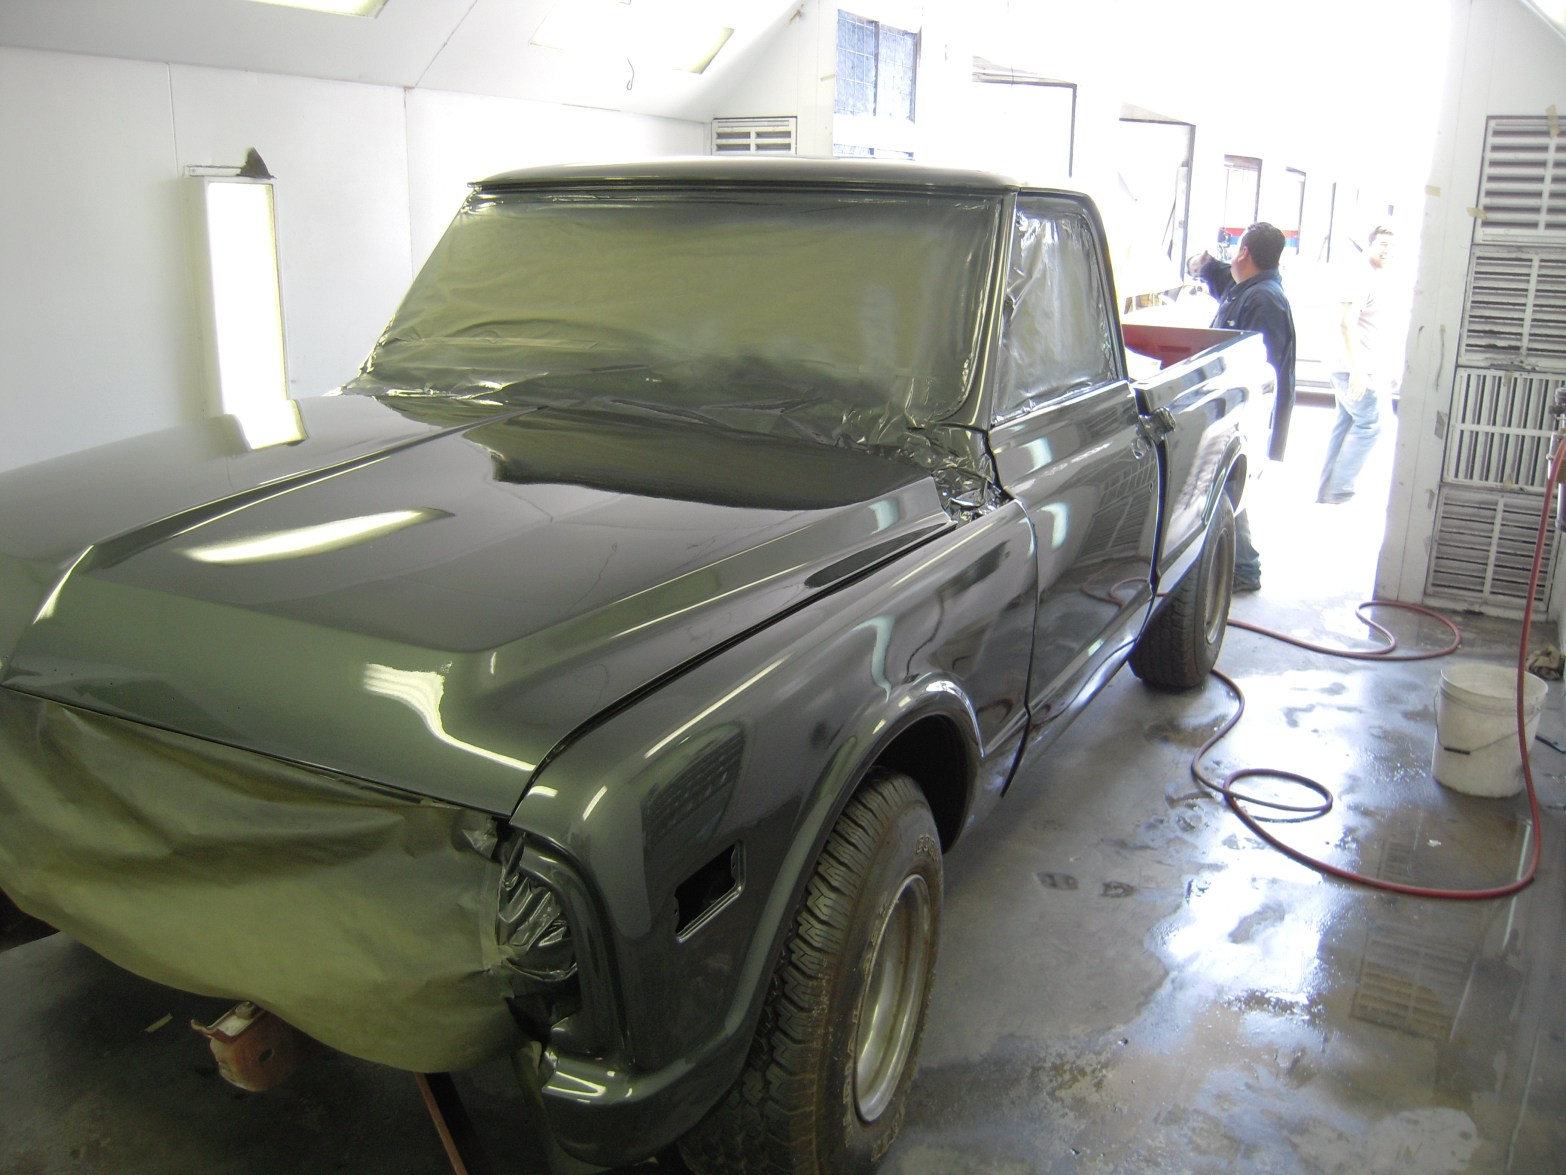 west-coast-body-and-paint-1972-chevy-c10-5